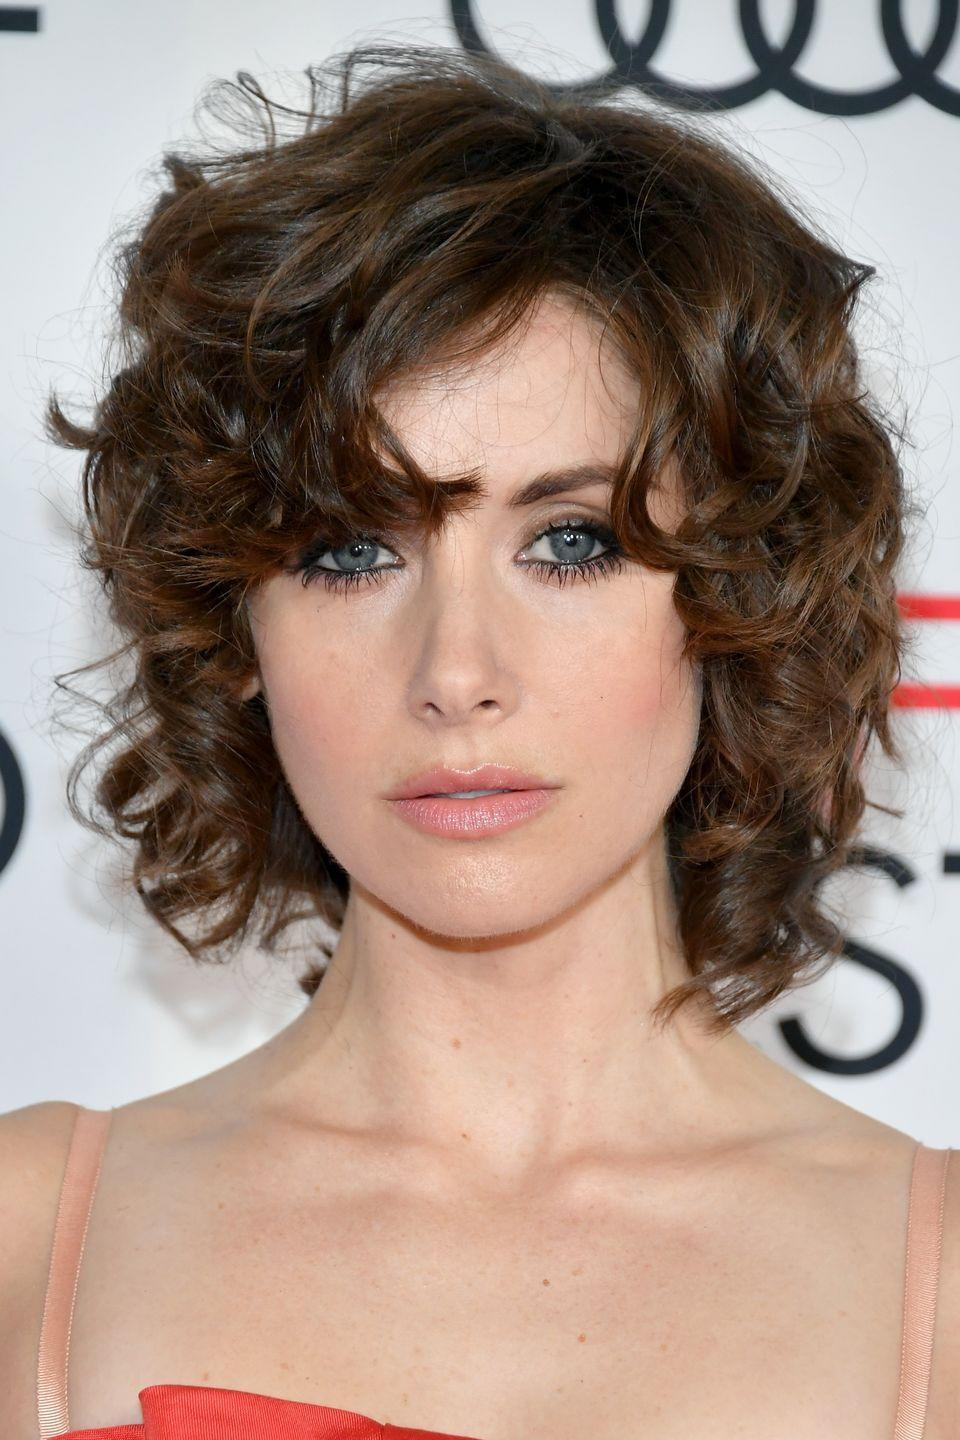 <p>Channelling her badass (and slightly try hard) character Ruth in 80s wrestling series 'Glow', Alison Brie took to the red carpet with choppy, shoulder length curls. The best bit? Forget the retro perm with the texture of an old sponge, Brie's curls were soft, sultry and so 2017.</p>